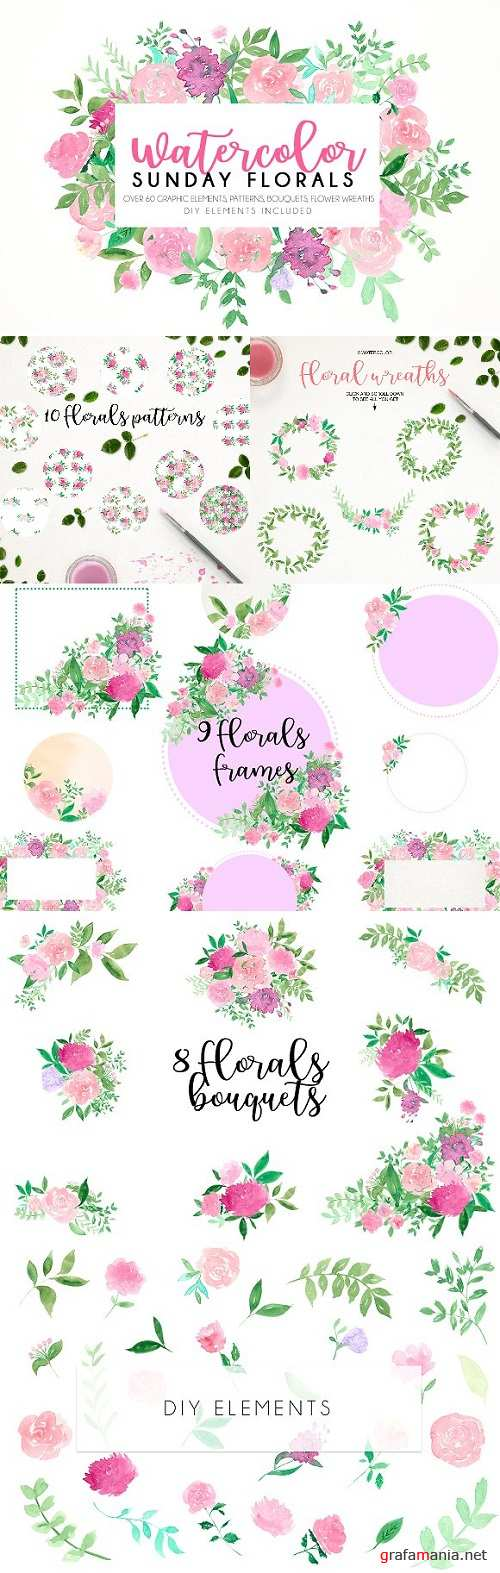 Watercolor Sunday florals - 1536419